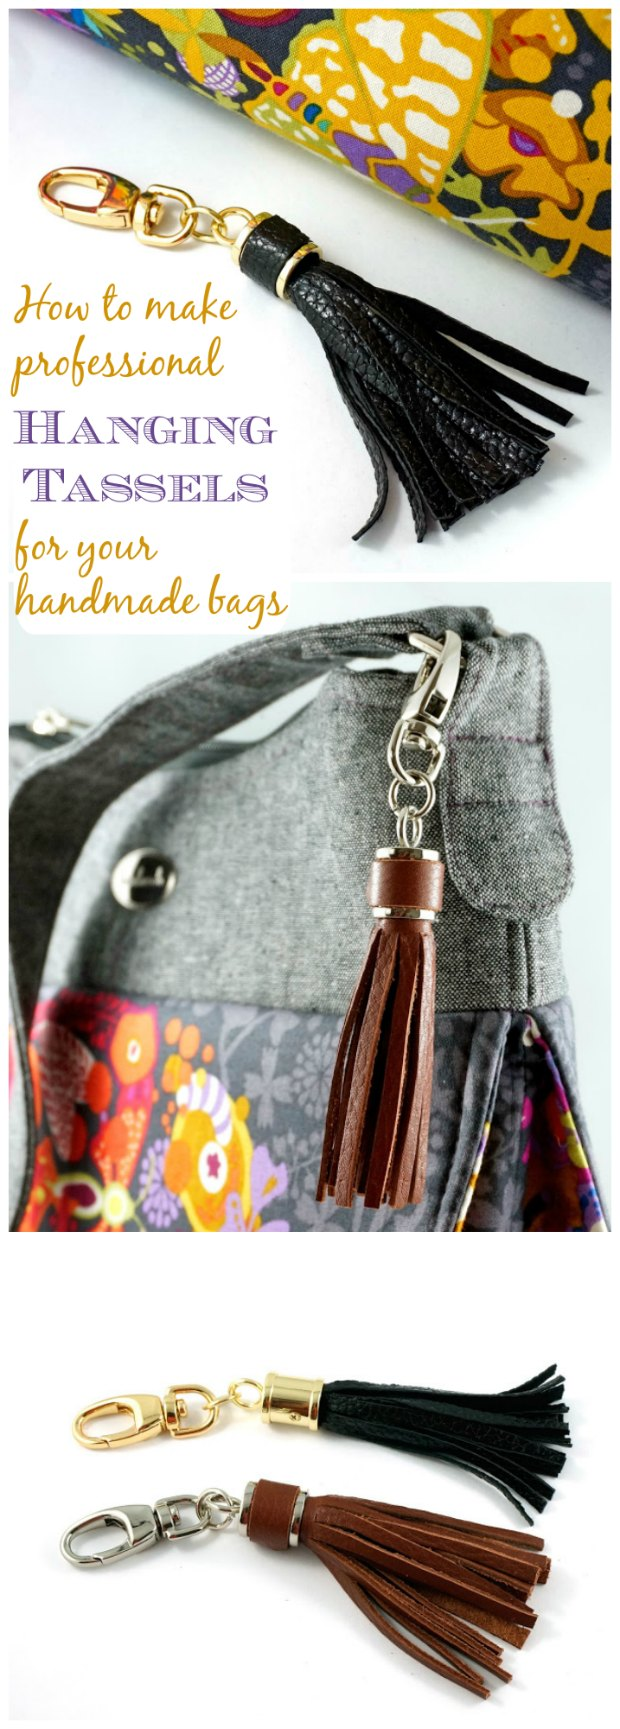 How to make tassels for your handmade bags.  You can also use suede and narrow suede cord for this too.